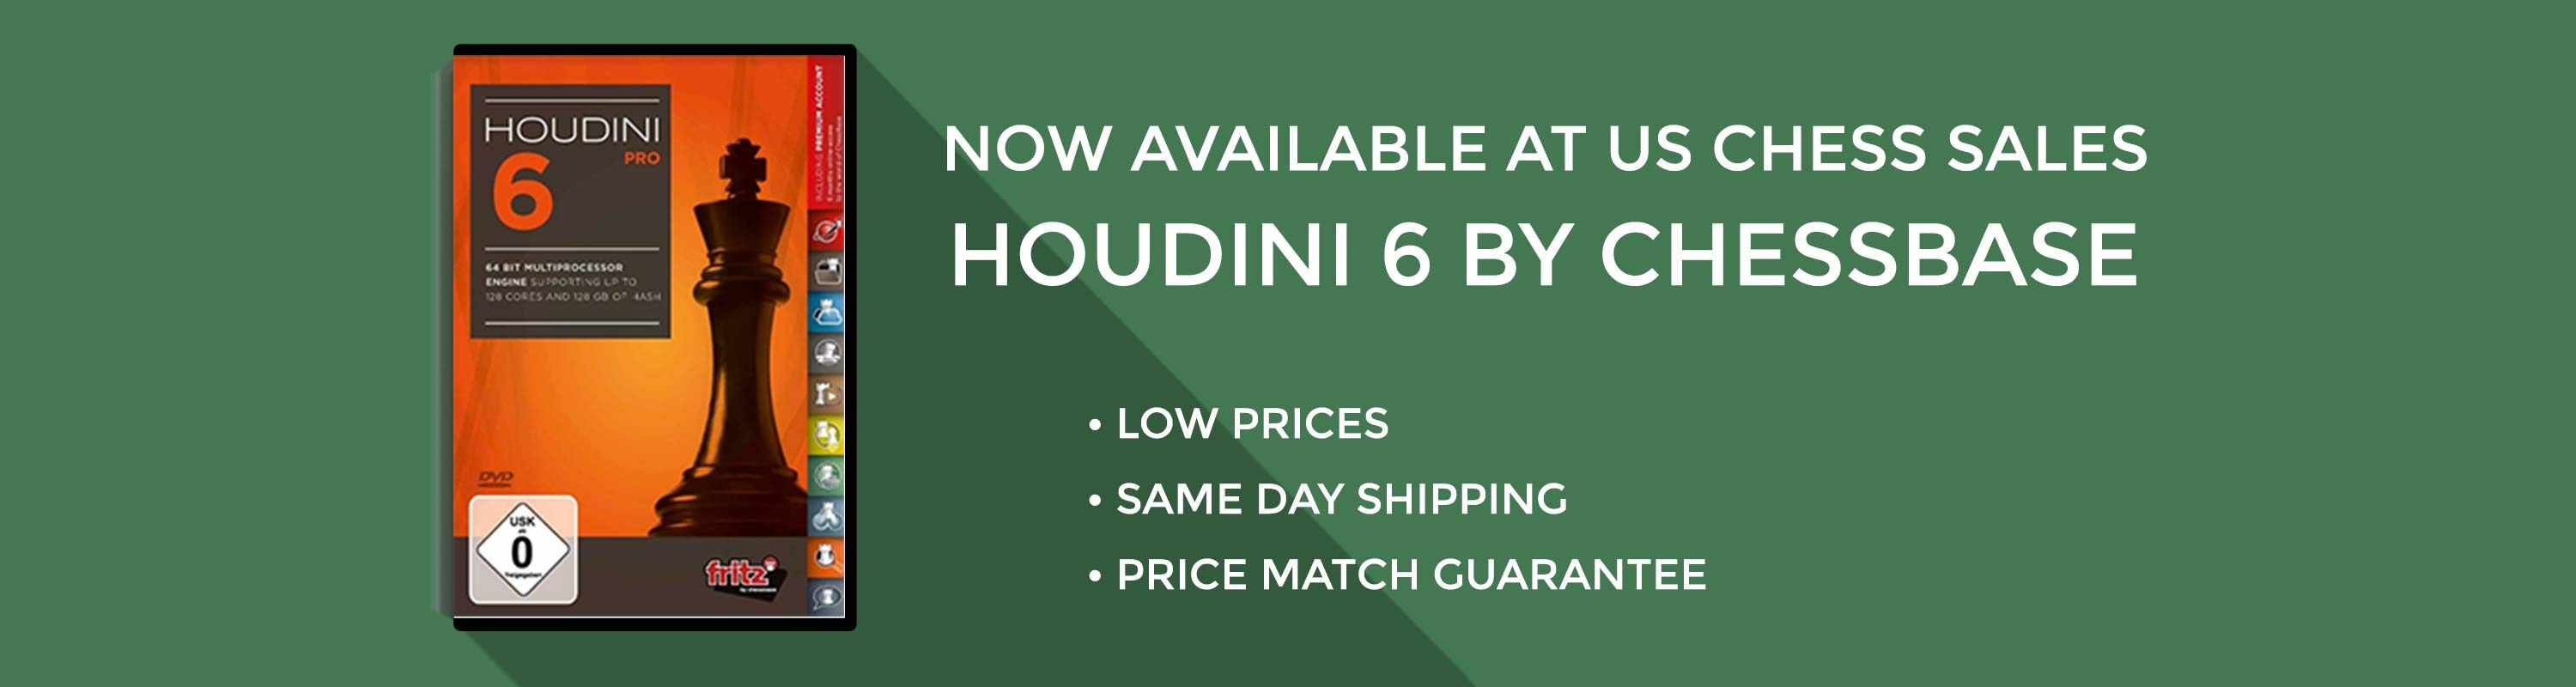 Houdini 6 Now Available at US Chess Sales!